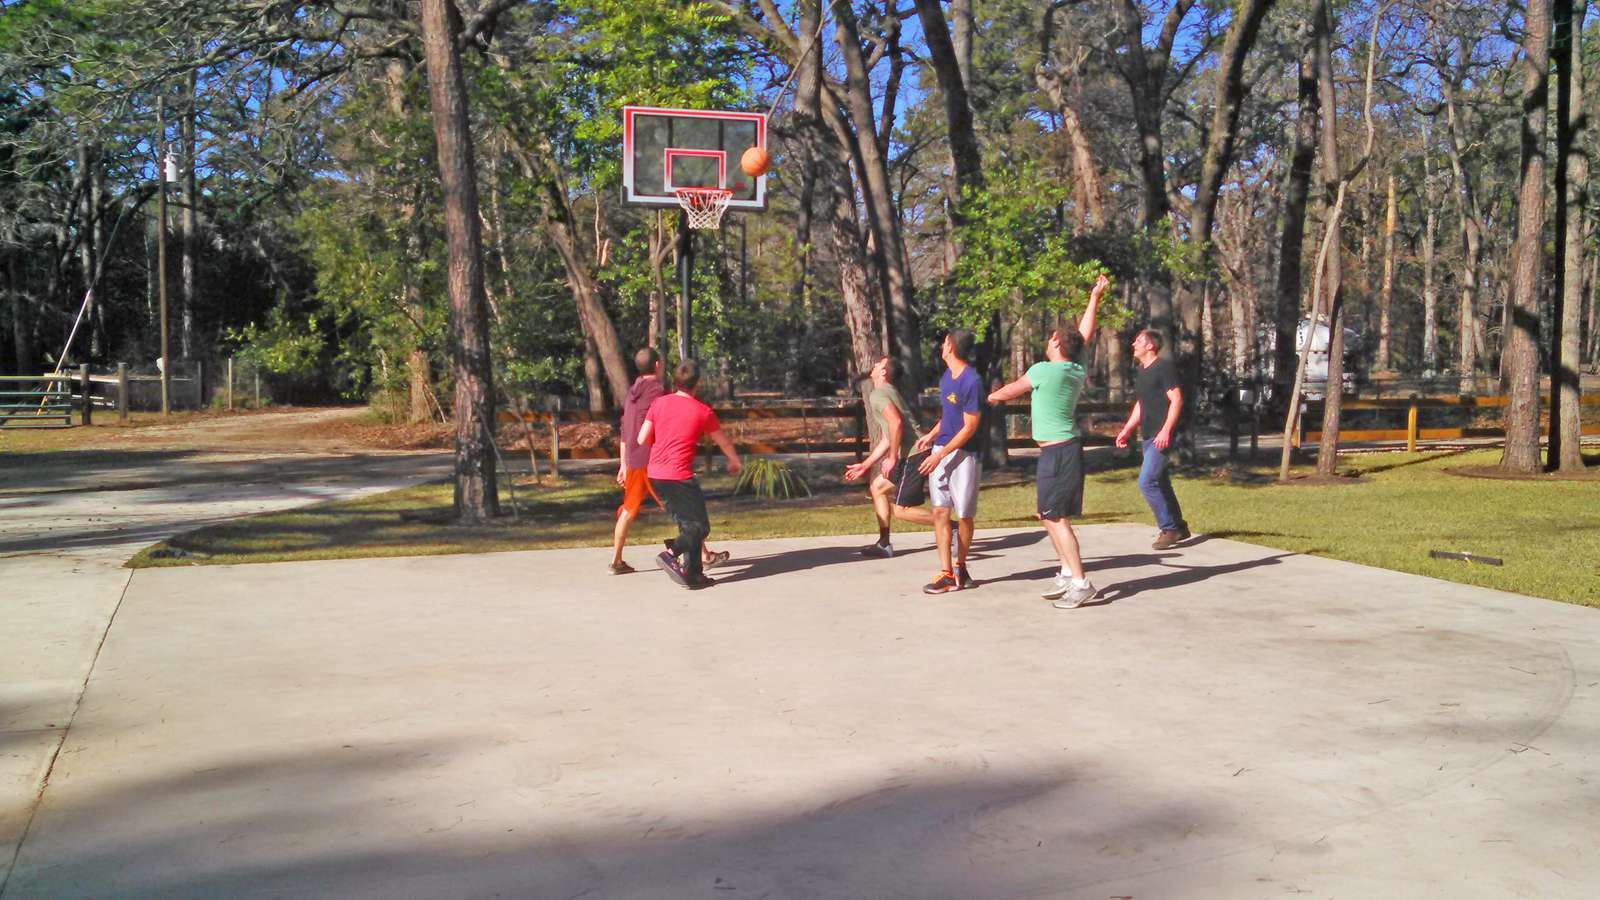 Enjoy a game of basketball on our full court.